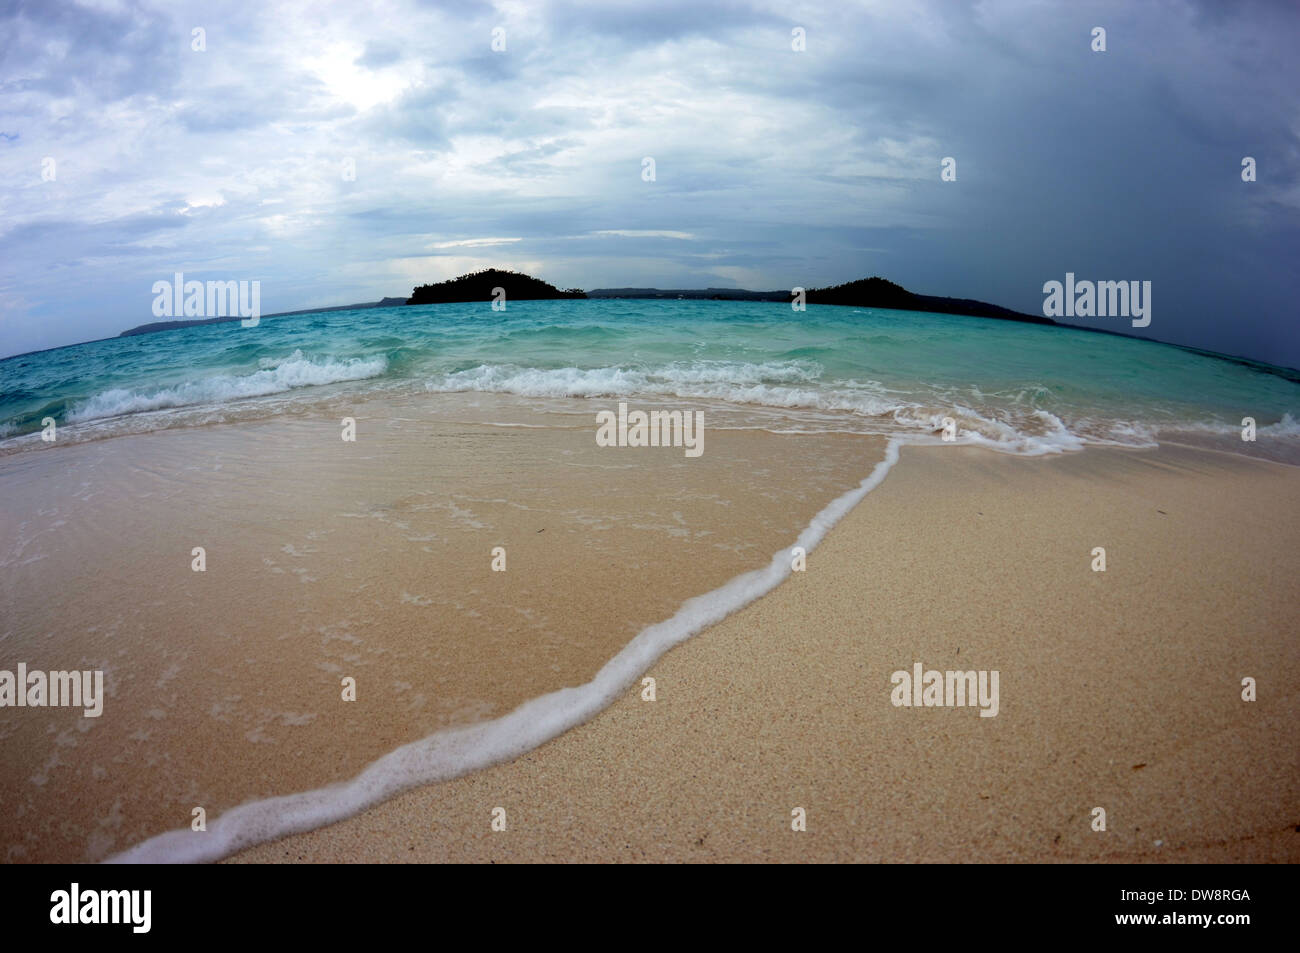 Storm approaches Nukuifala Islet, viewed from Nukuione Islet, Uvea, Wallis & Futuna, South Pacific - Stock Image